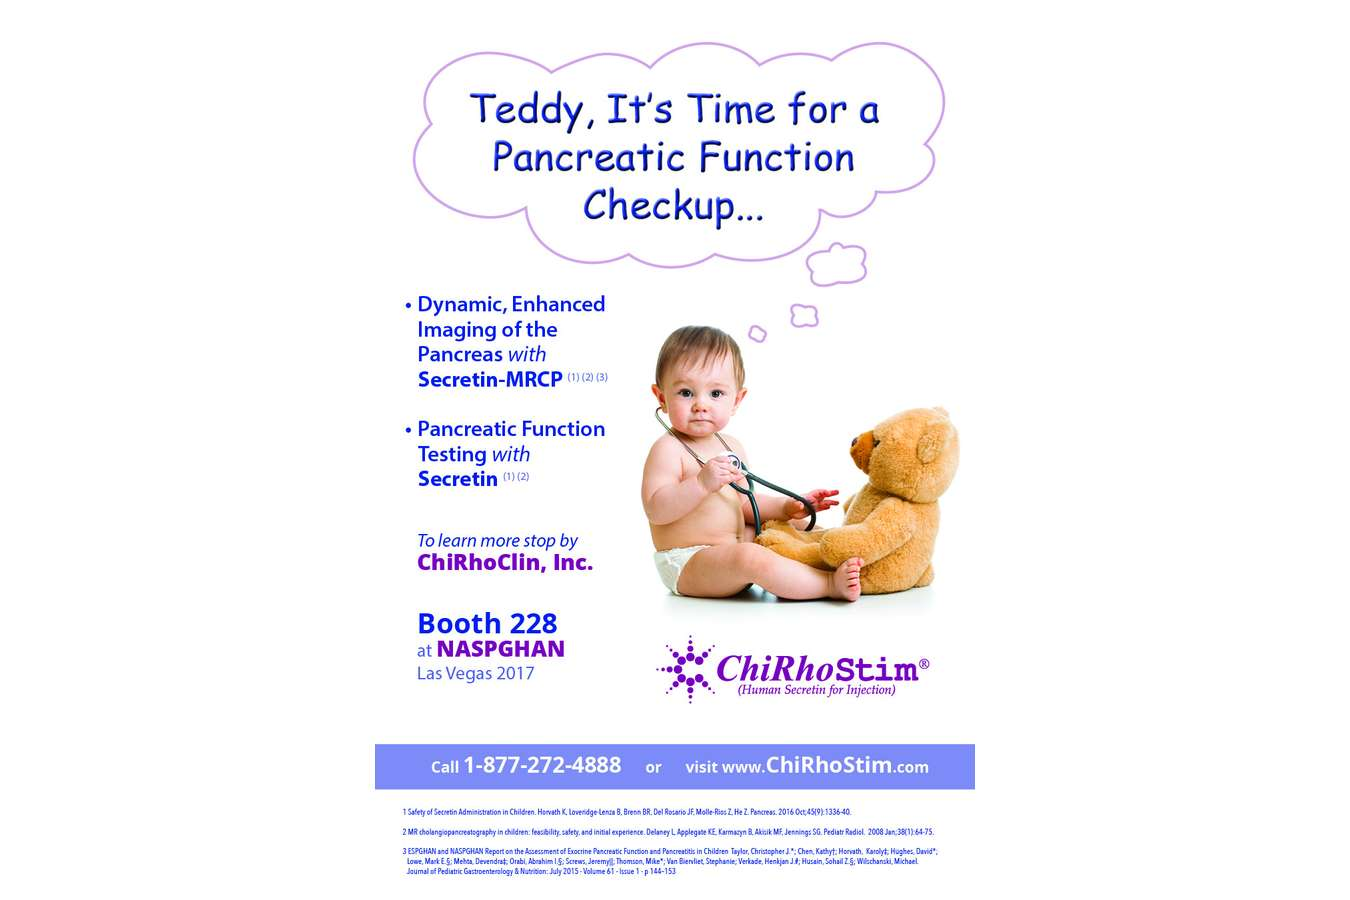 Chirhostim Dr Baby Bear : Handout for North American Society for Pediatric Gastroenterology, Hepatology and Nutrition trade show